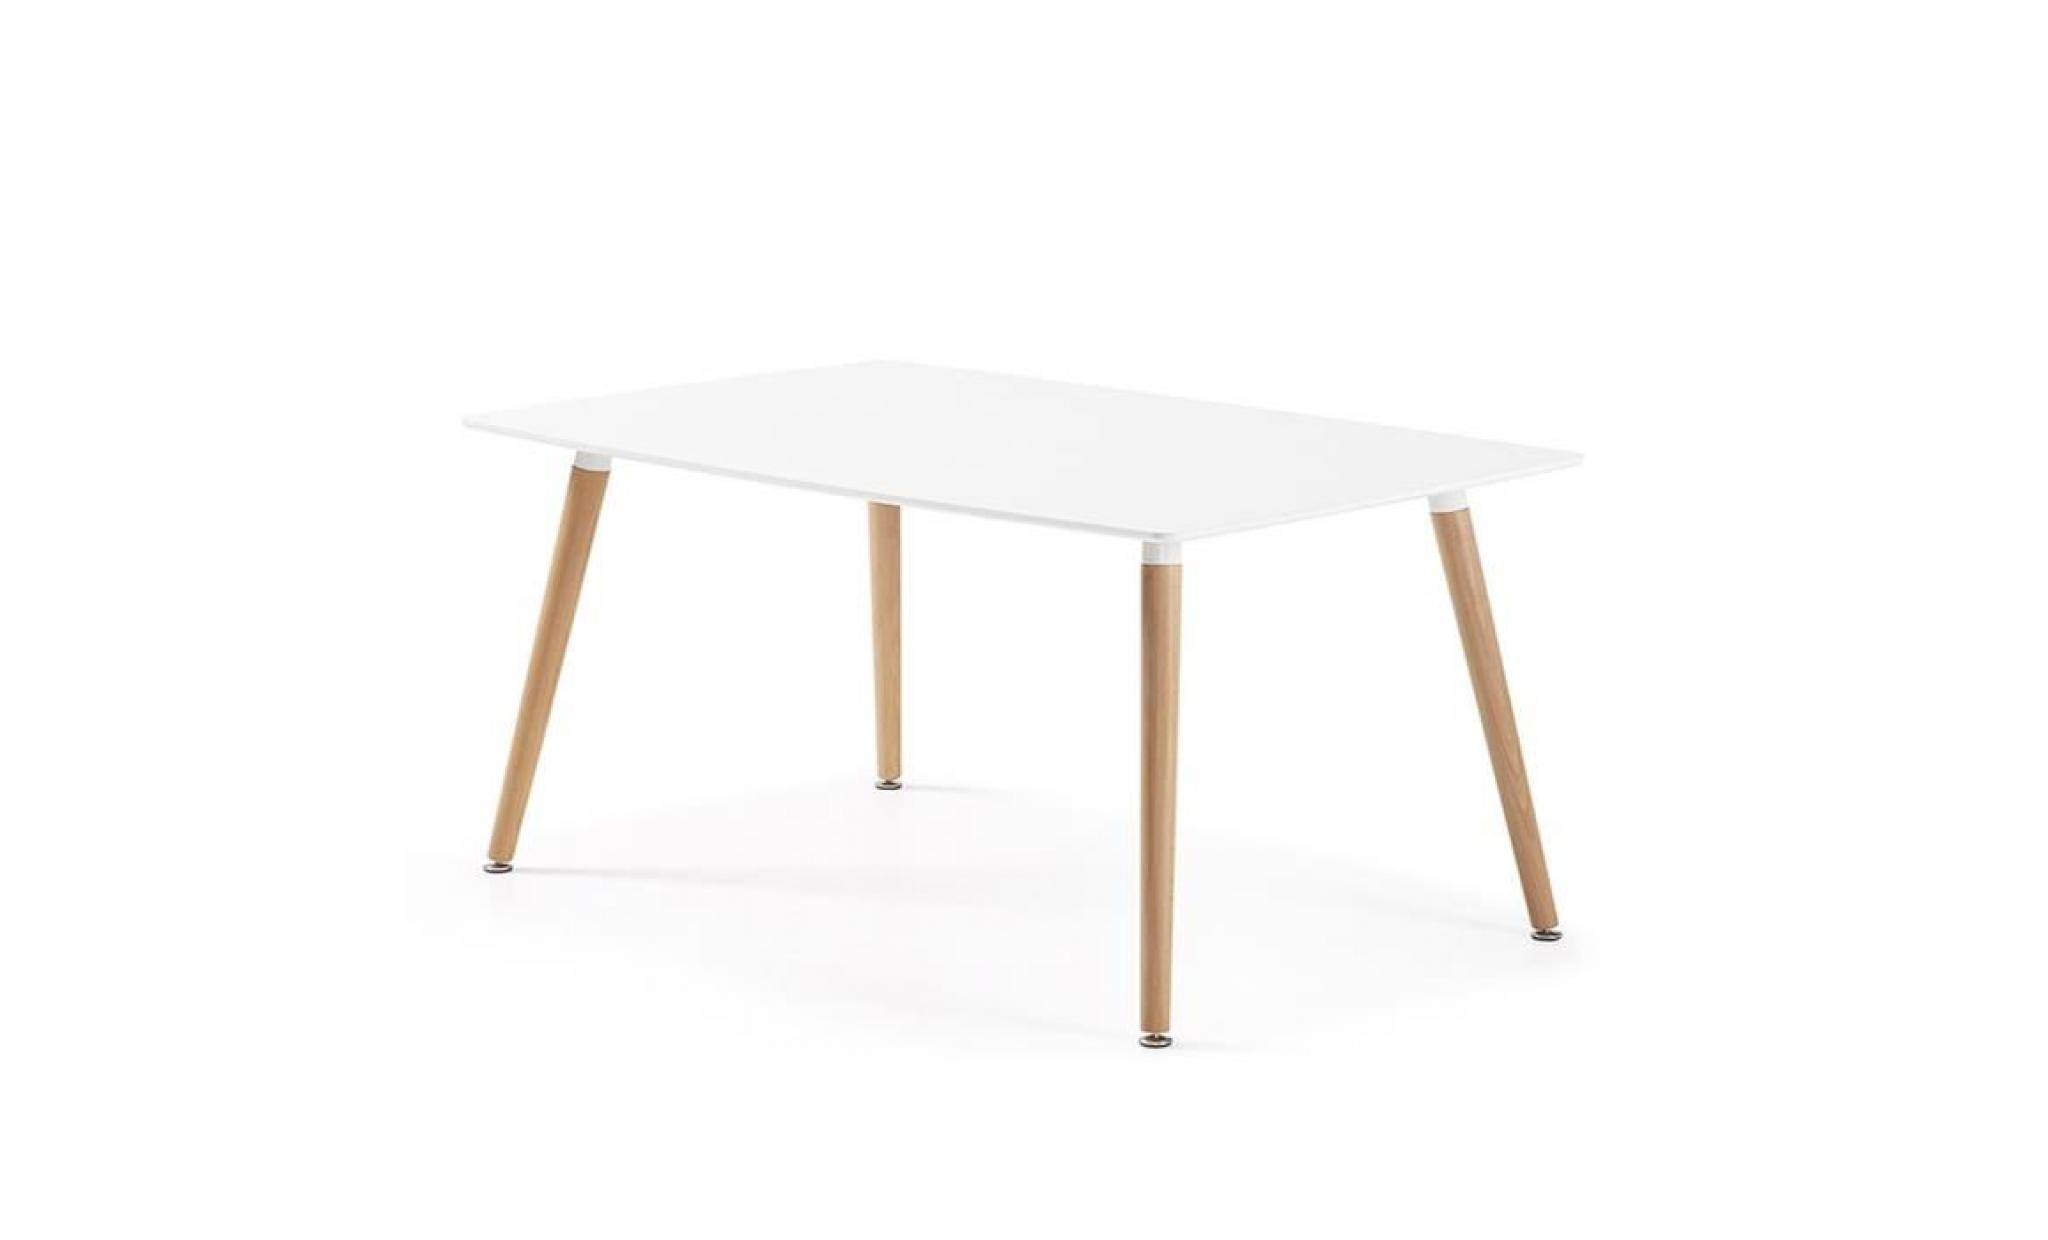 Table manger rectangulaire design blanche en bois laqu for Table de salle a manger rectangulaire